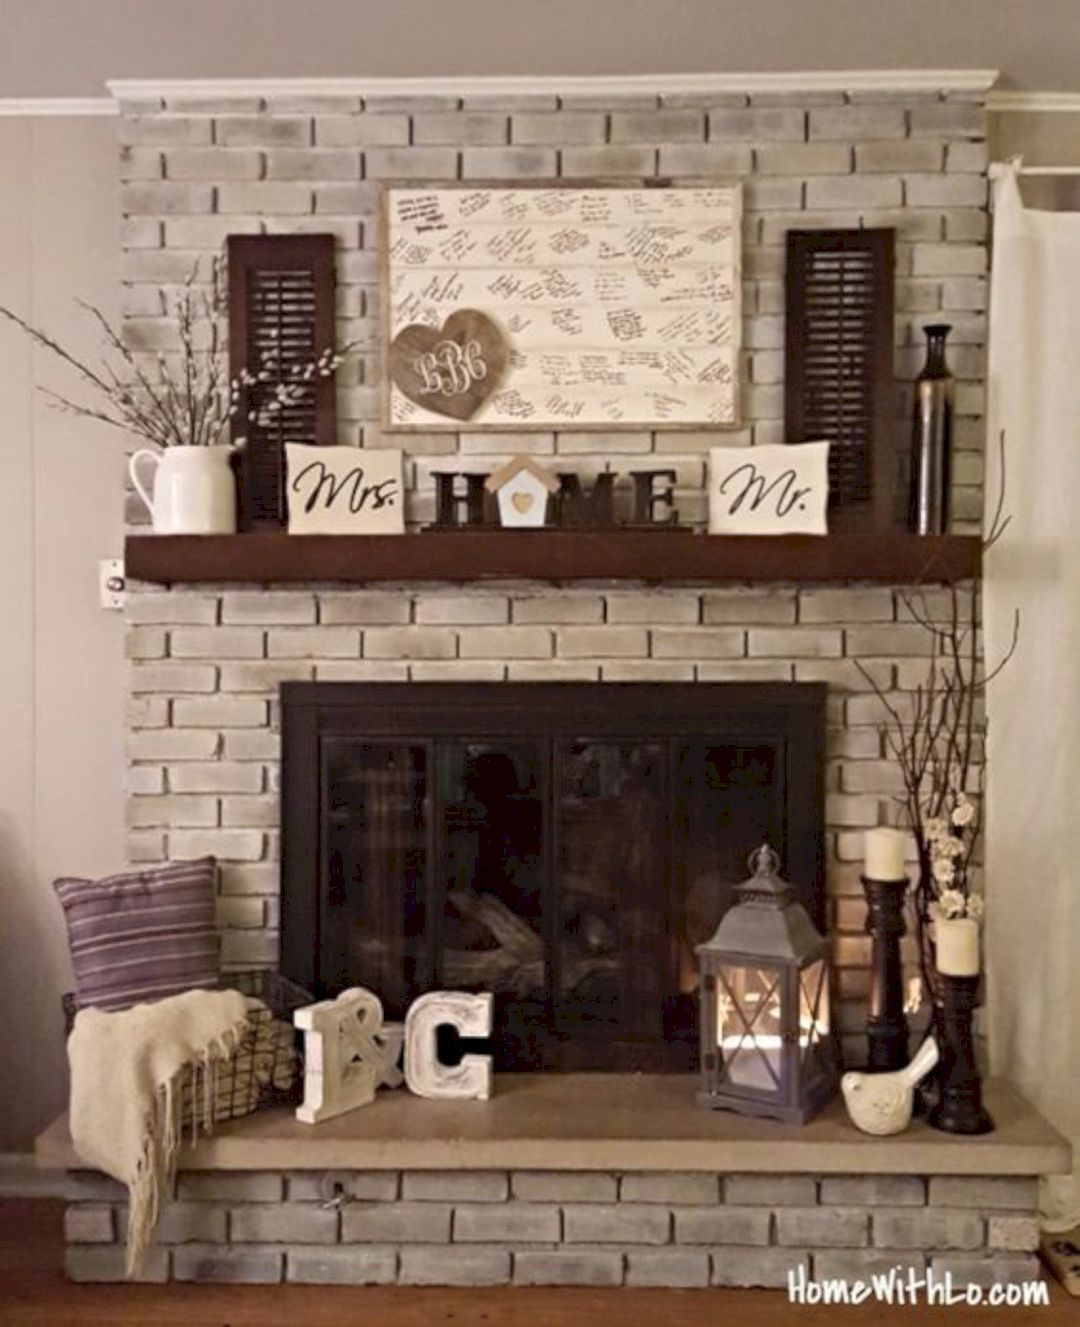 7 Awesome Small Living Room Ideas With Fireplace Fall Fireplace Decor Home Decor Home